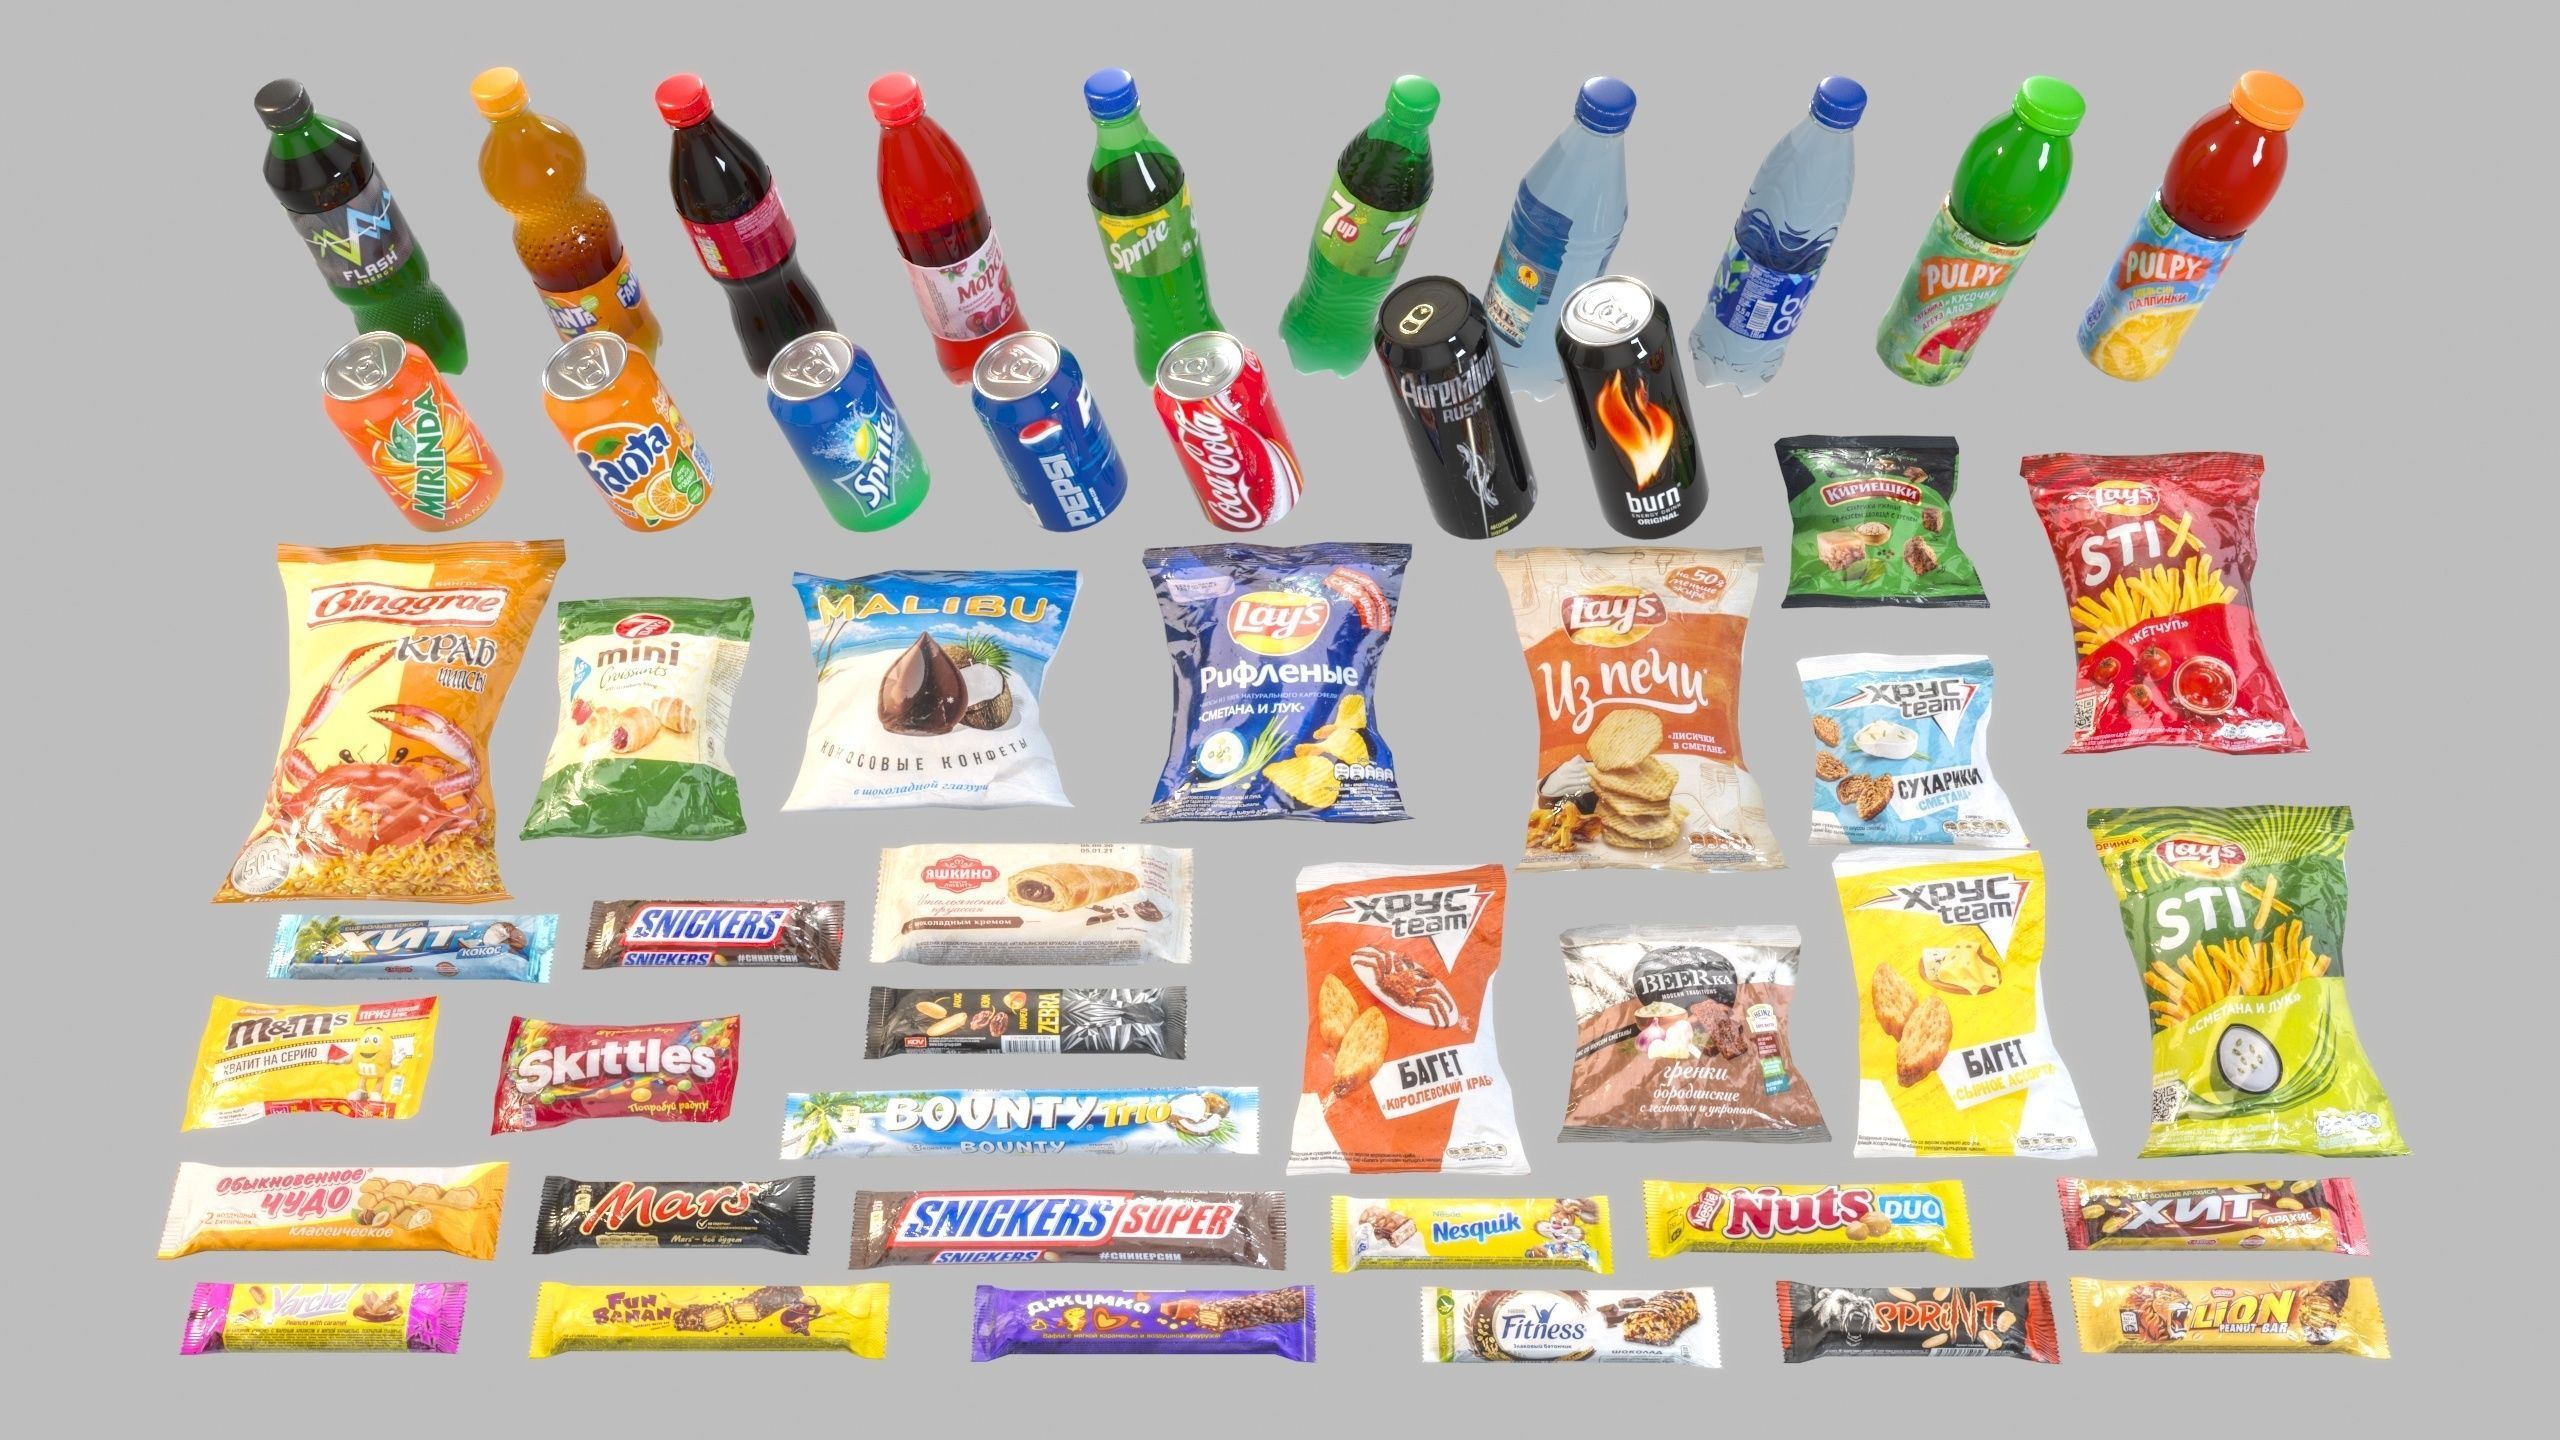 Set of drinks and snacks and chocolate bars